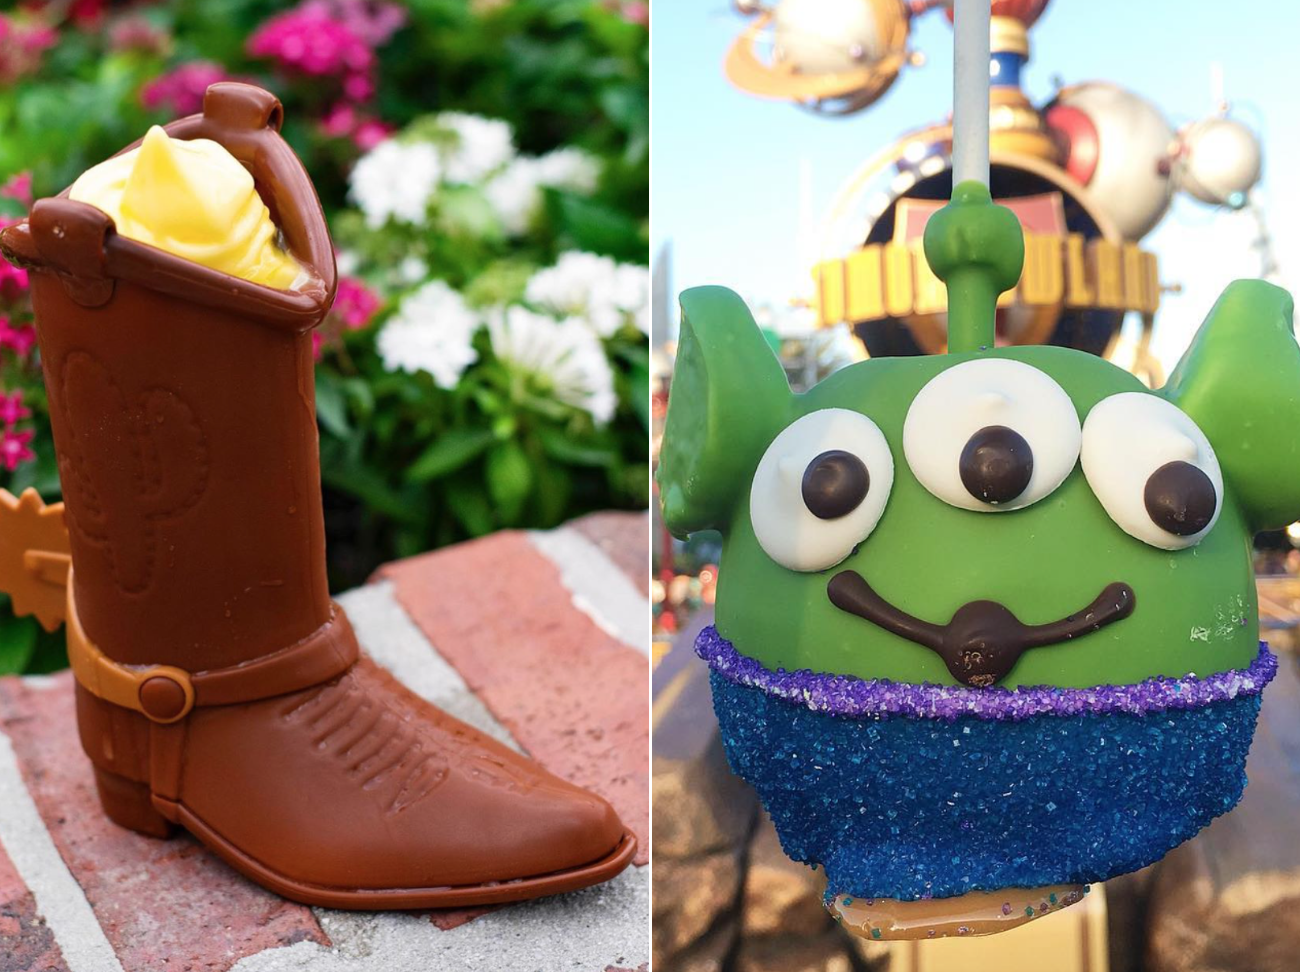 Disney Just Debuted a Ton of 'Toy Story' Food—Including a Dole Whip-Filled Cowboy Boot